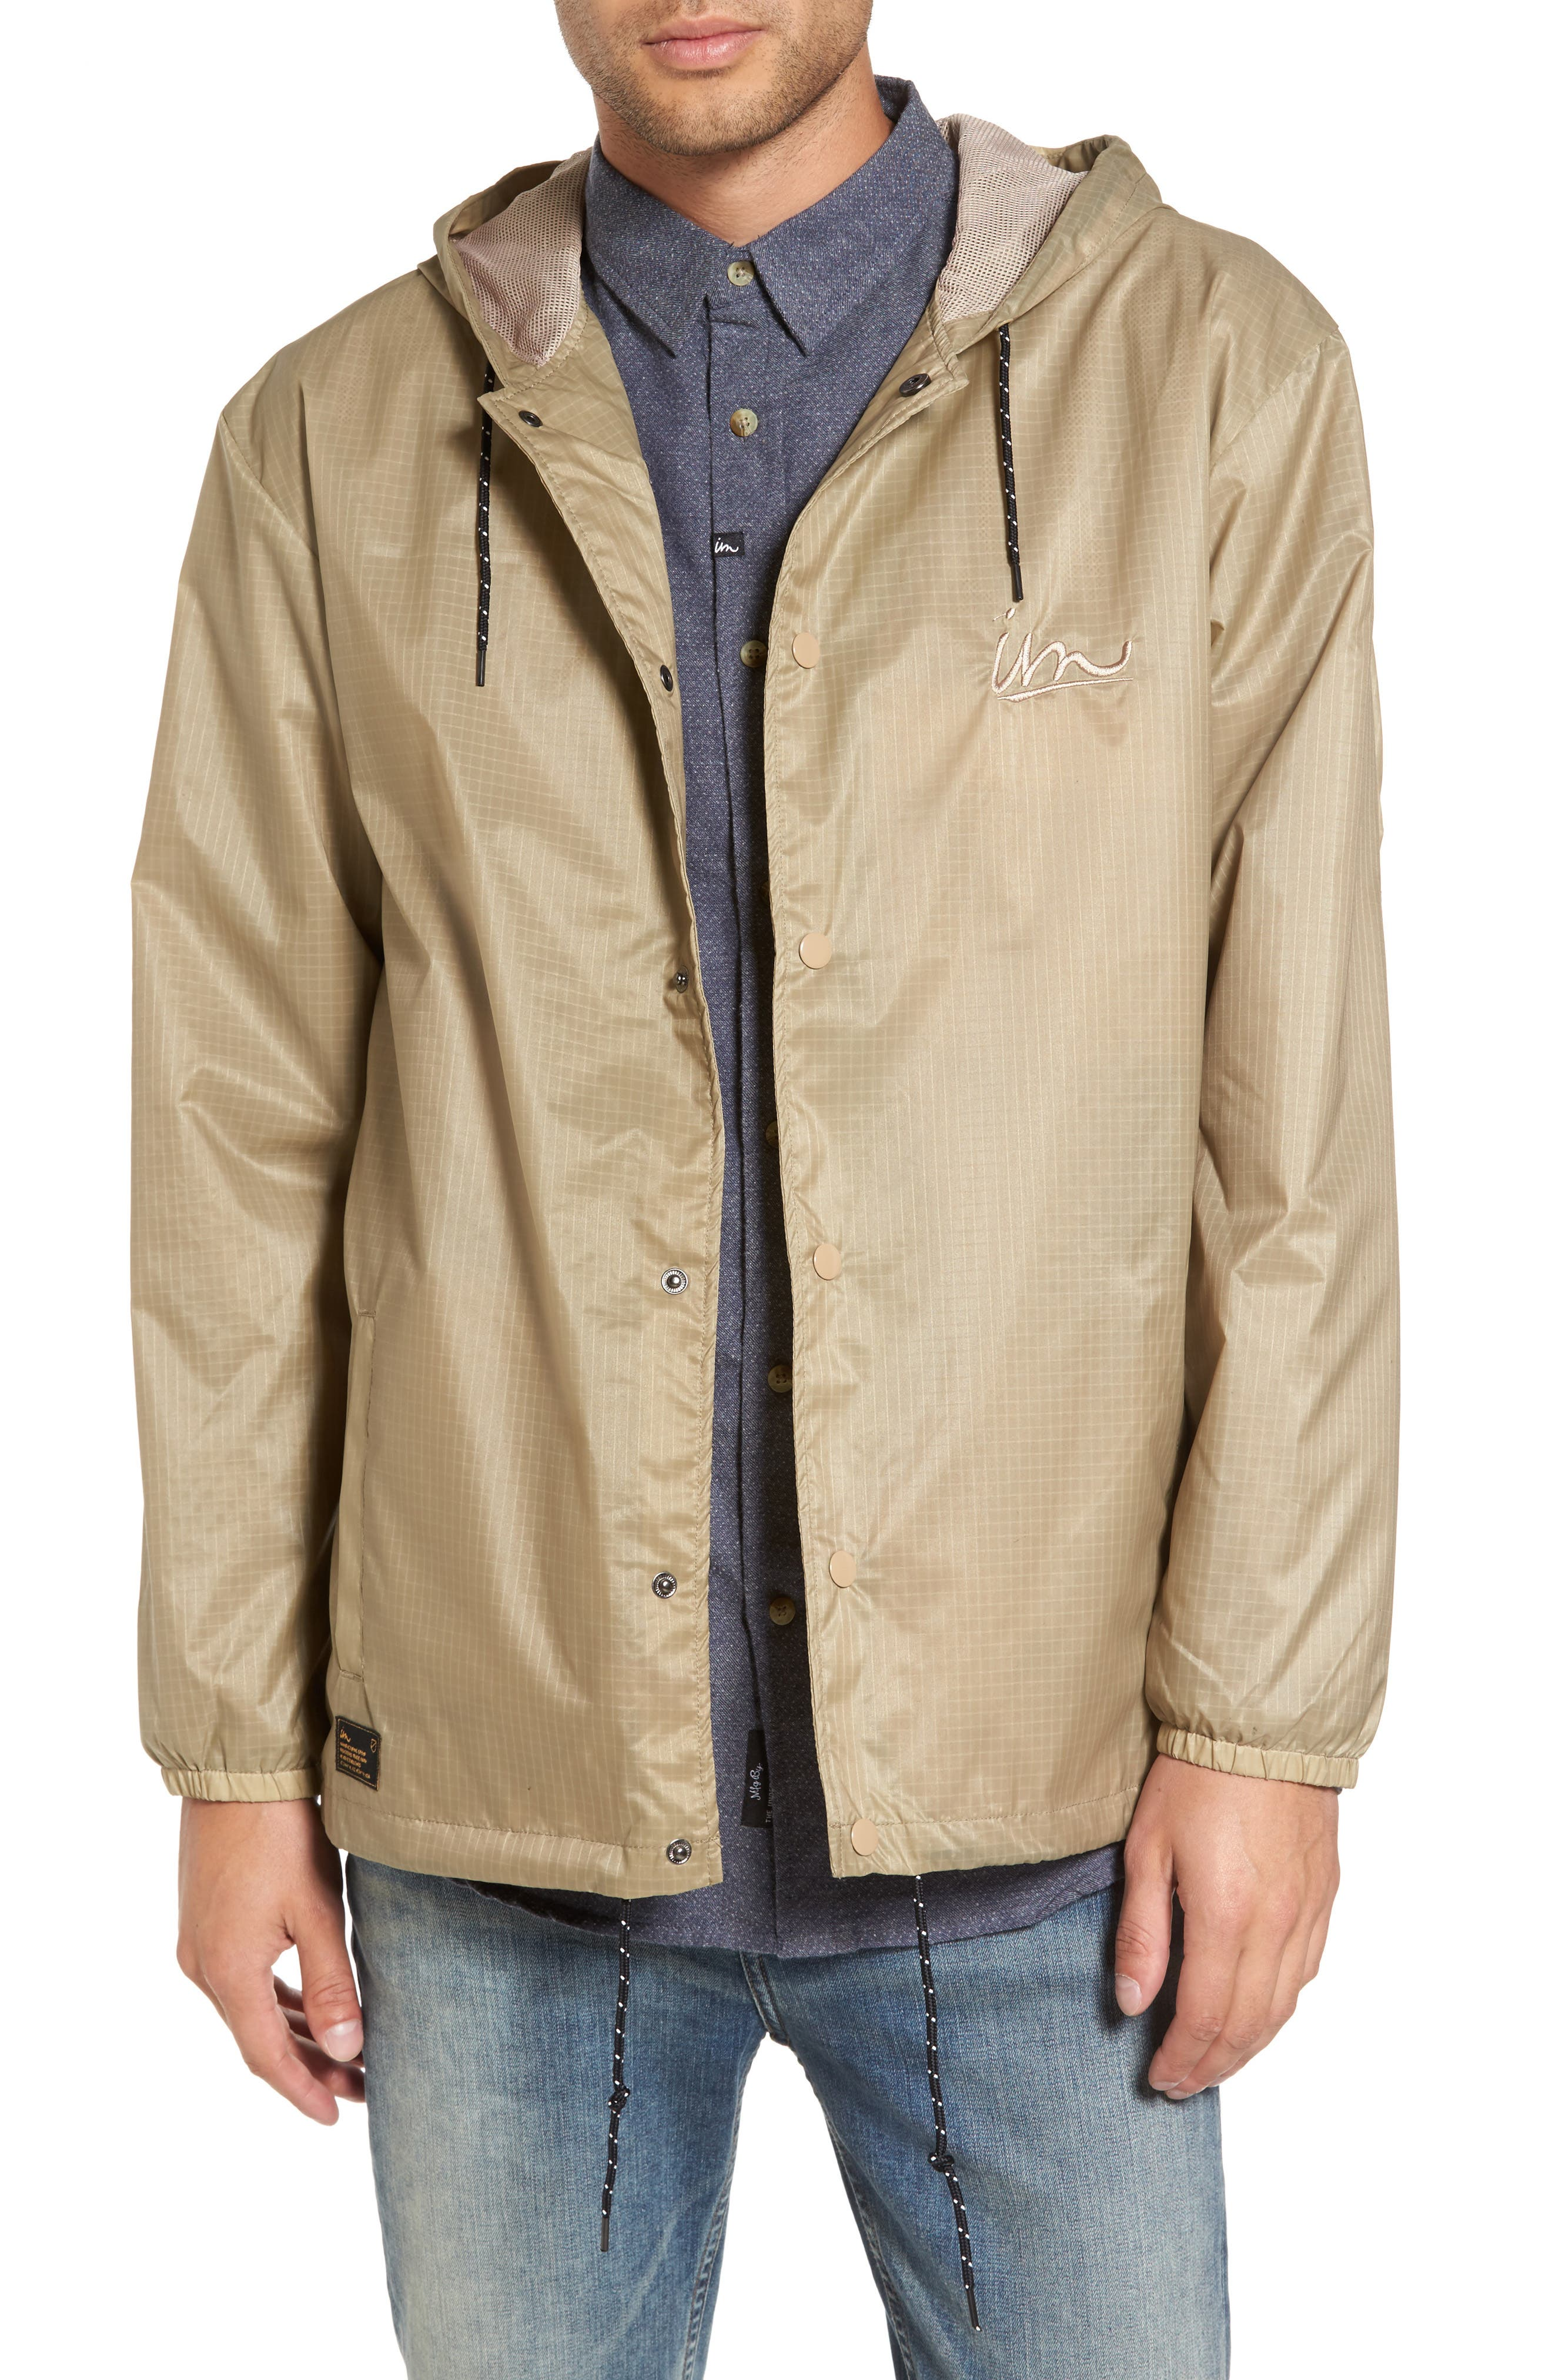 Main Image - Imperial Motion NCT Vulcan Coach's Jacket